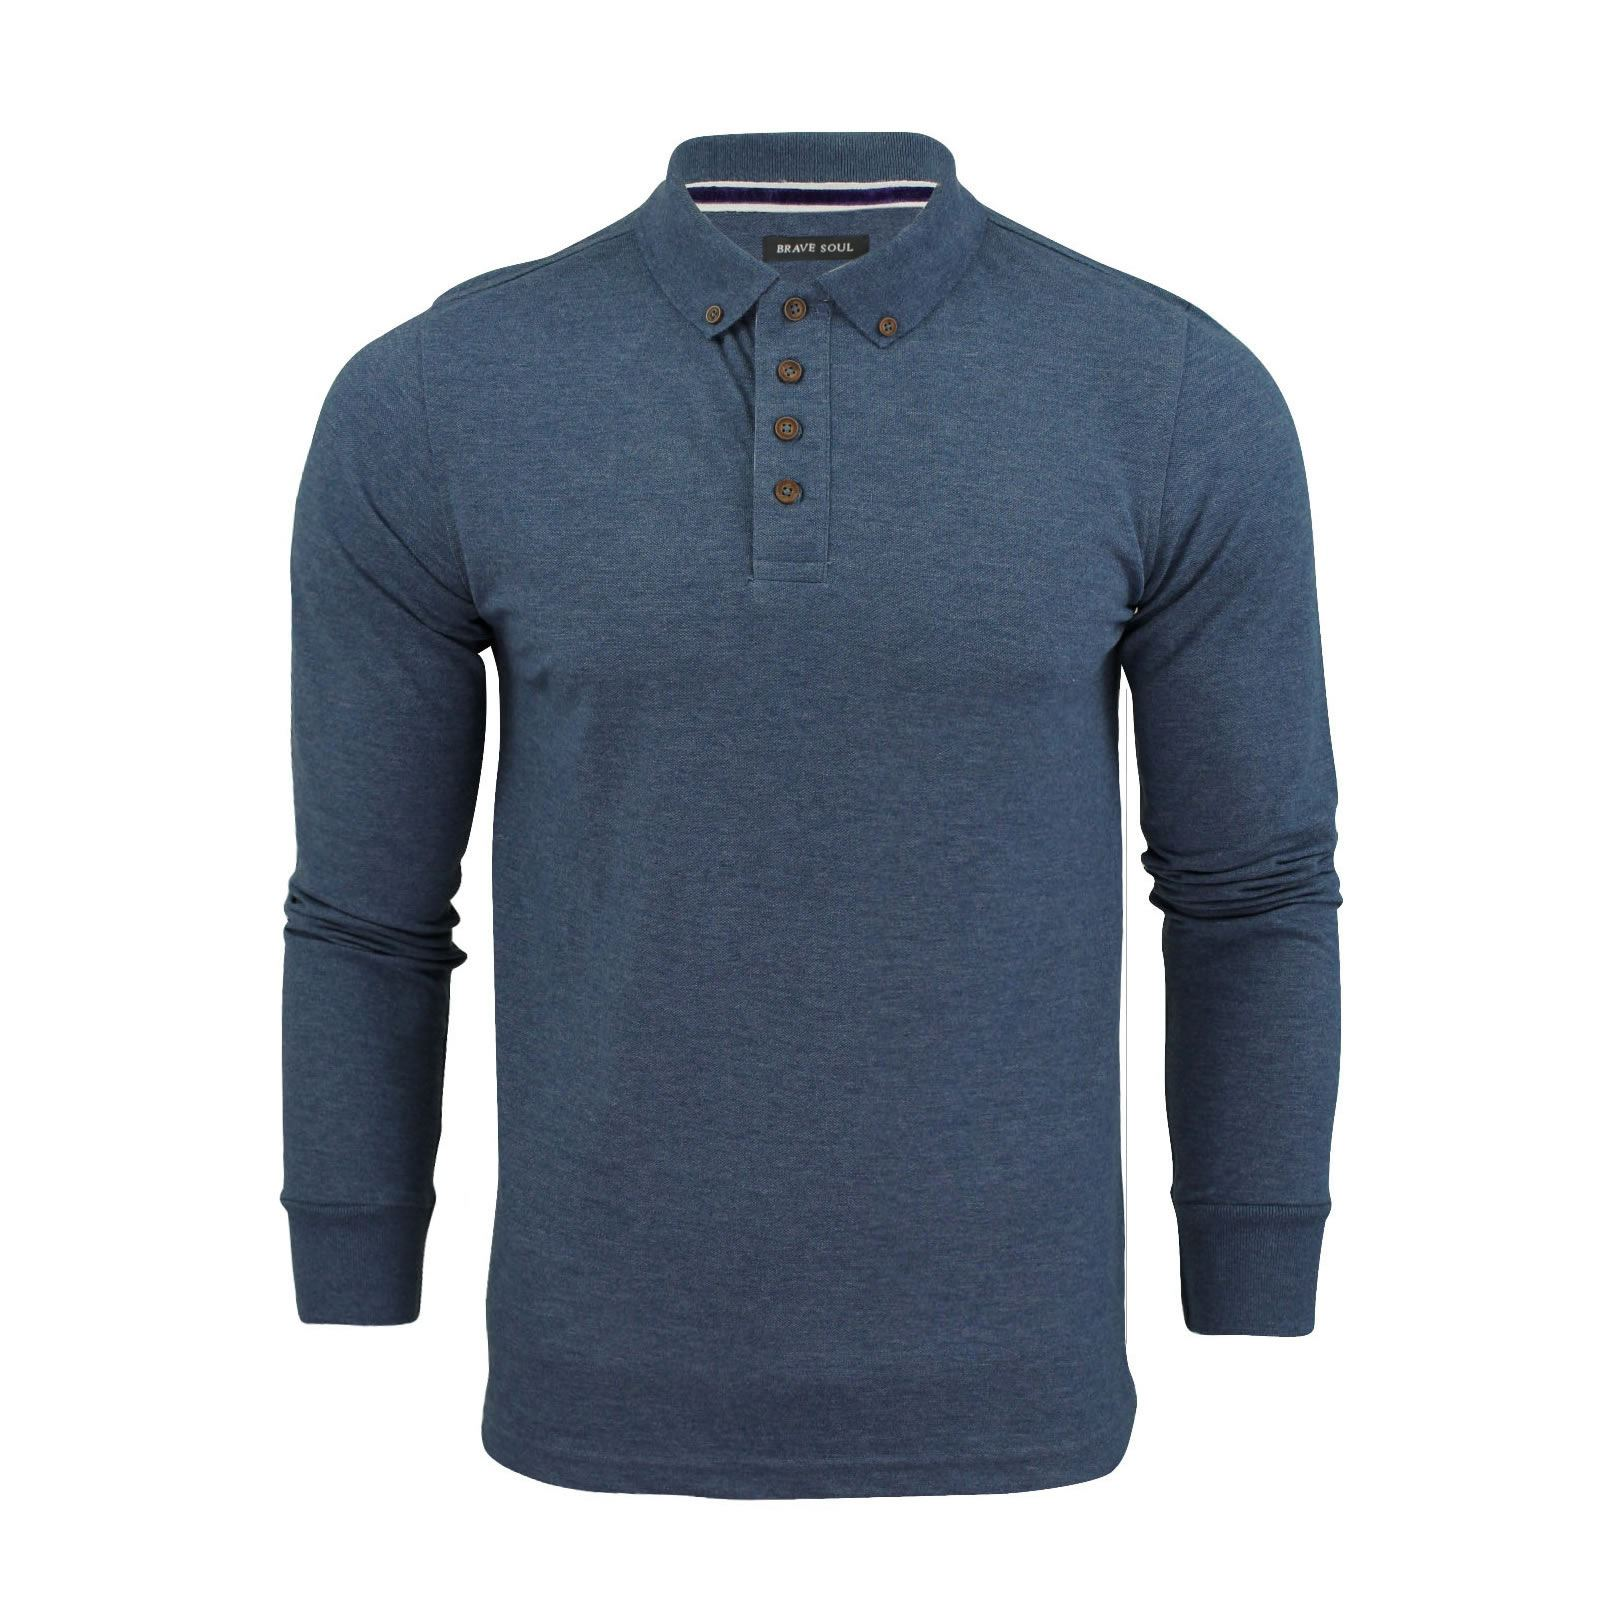 Brave-Soul-Lincoln-Homme-Polo-Shirt-a-Manches-Longues-En-Coton-Pique-Top-Casual miniature 20